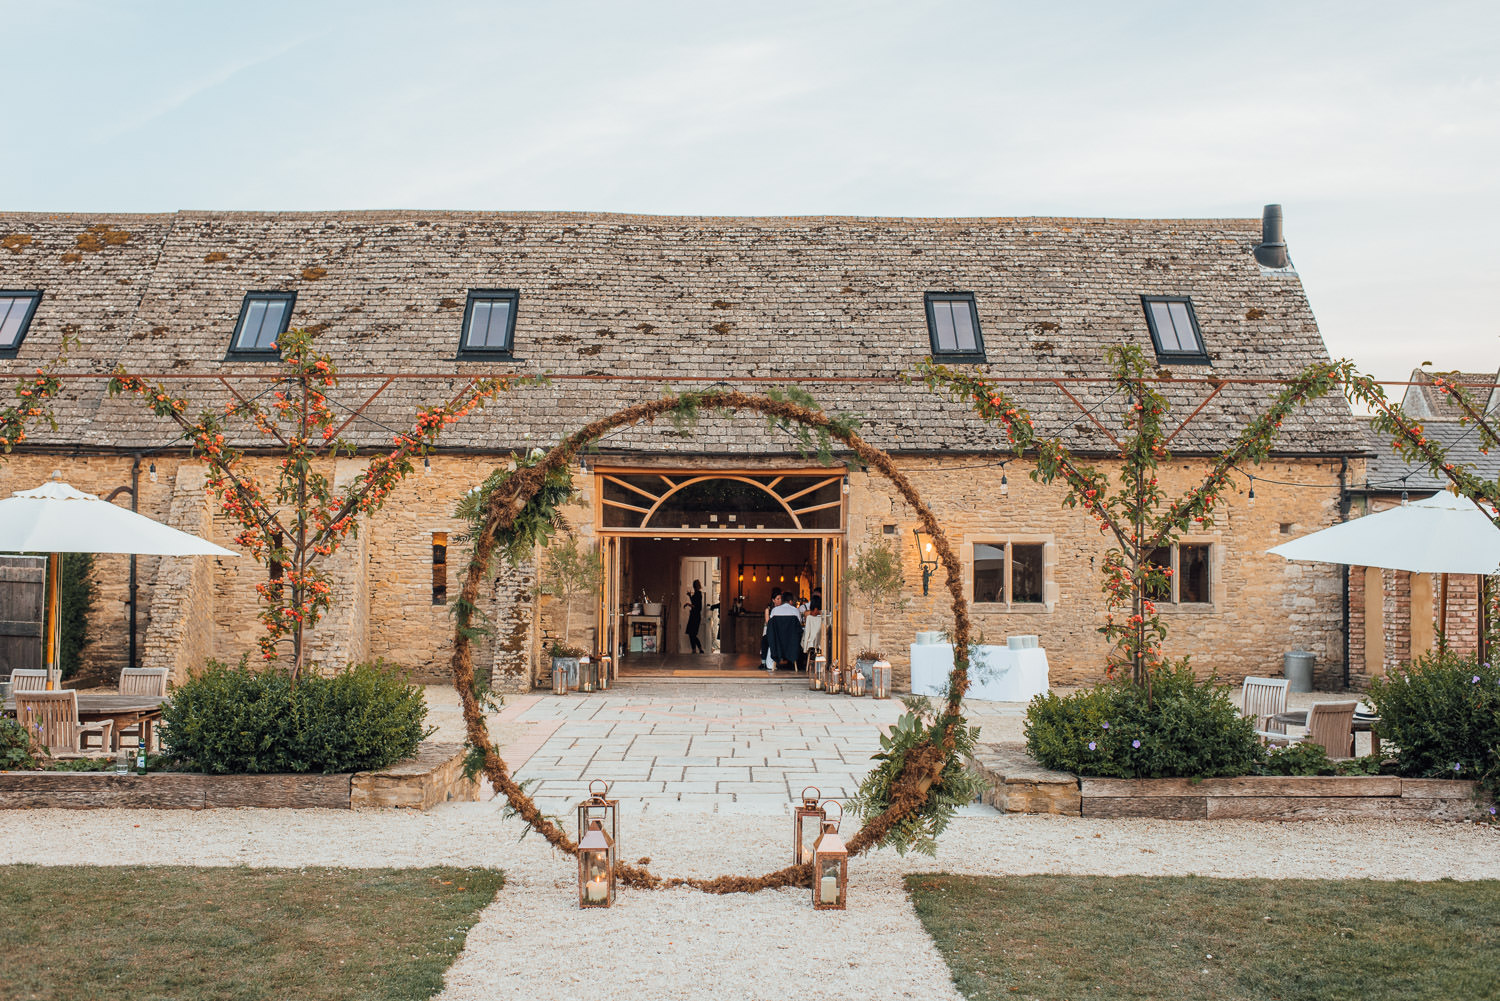 chic floral moongate in oxleaze barn wedding by london wedding photographer the shannons photography